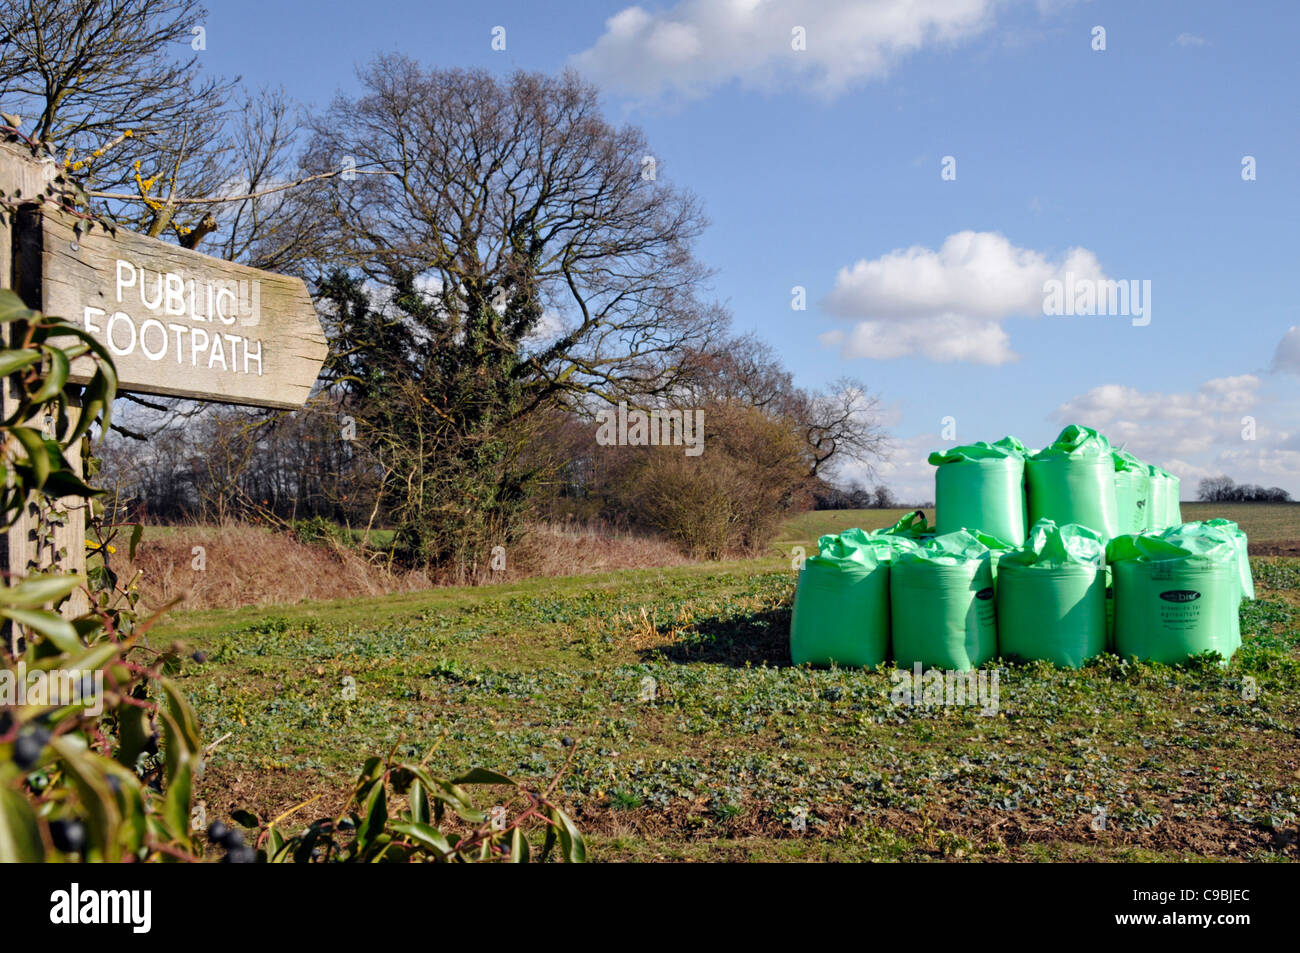 Public Footpath sign and bagged Biosolids contents derived from sewage by Nutri Bio part of Anglian Water stacked Stock Photo